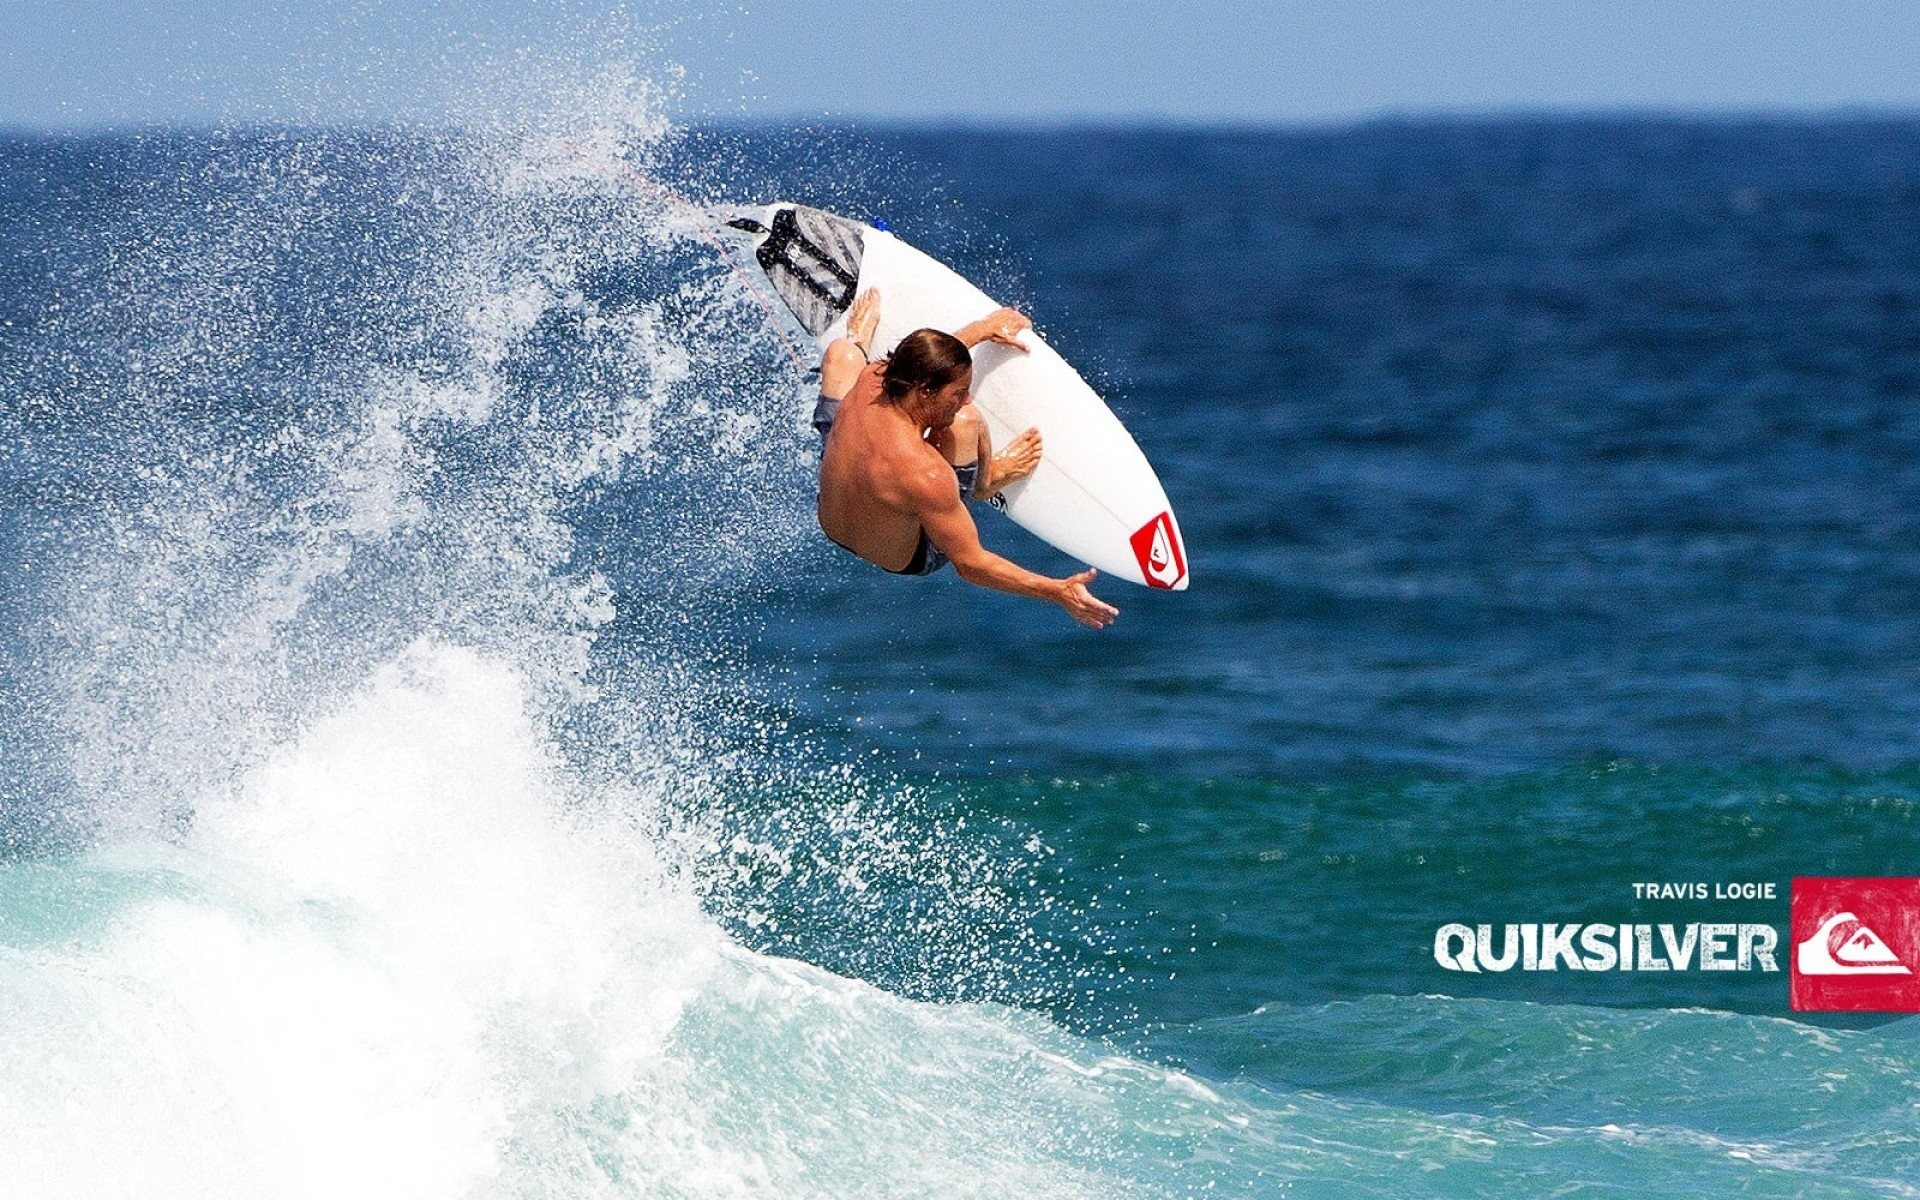 1920x1200  Free Images Of Quiksilver Logo Wallpapers - Wallpaper Cave, #24  of 38